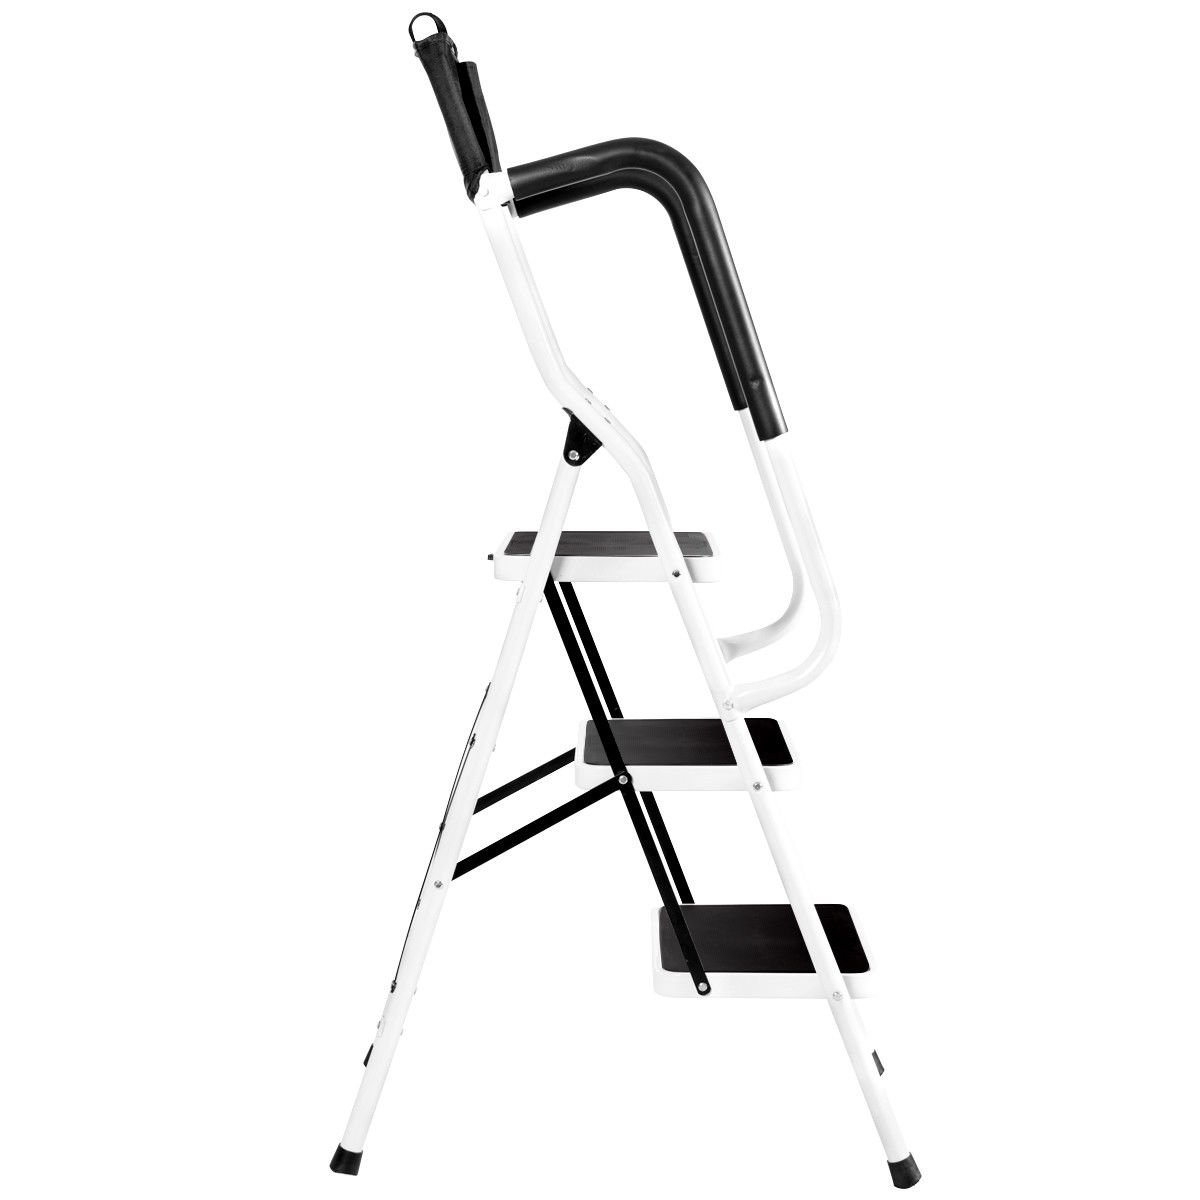 Giantex Folding 3 Step Ladder W/Padded Side Handrails Non-Slip Steps Tool Pouch Caddy Lightweight Powerful Capacity by Giantex (Image #8)